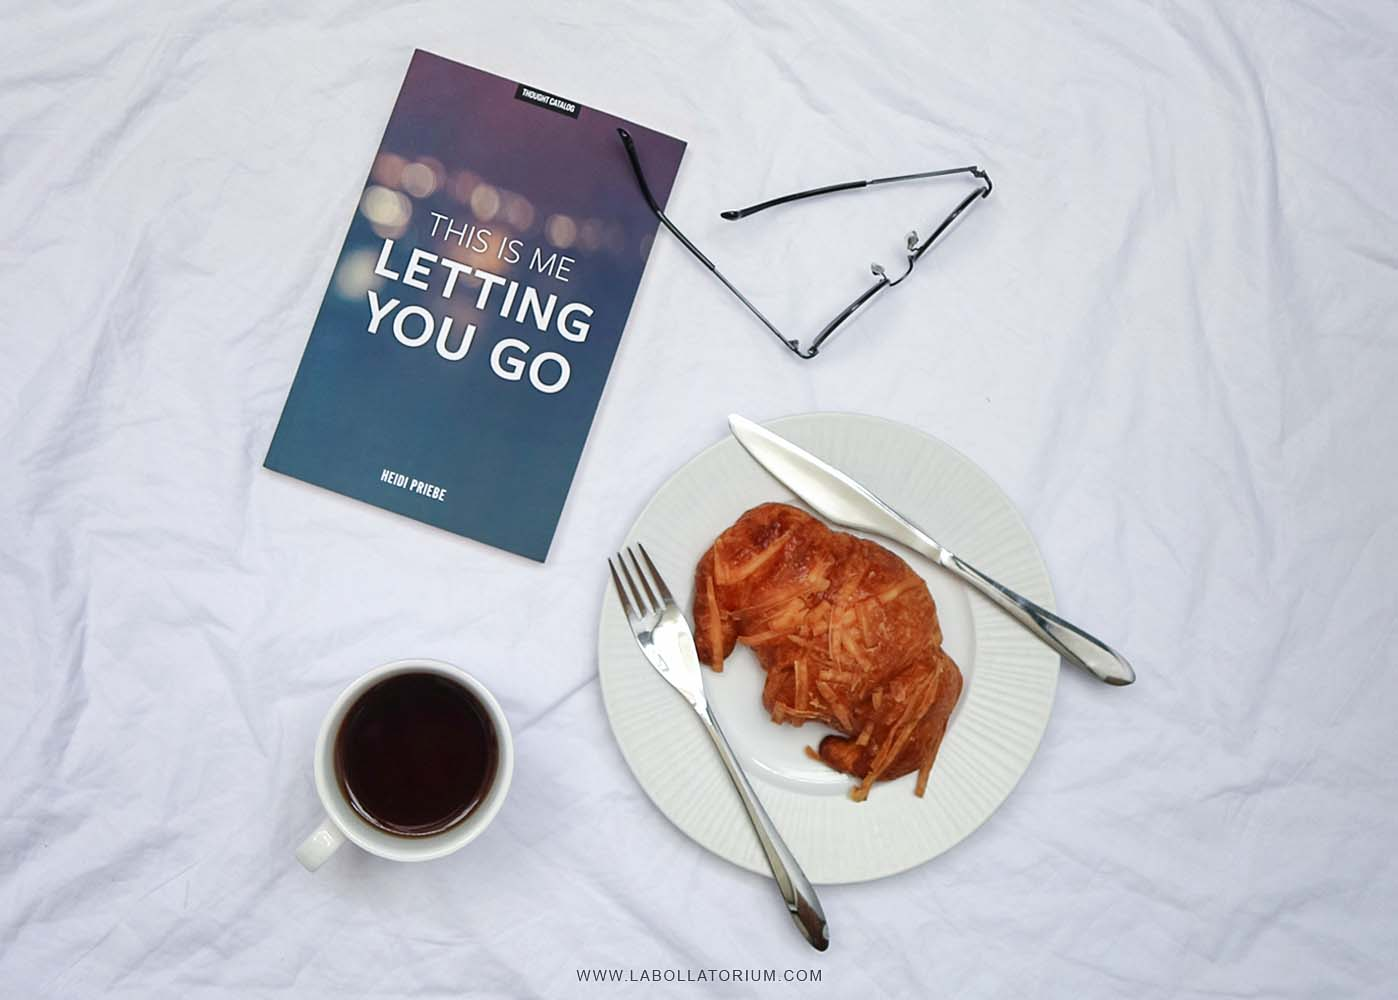 Review buku This Is Me Letting You Go karya Heidi Priebe